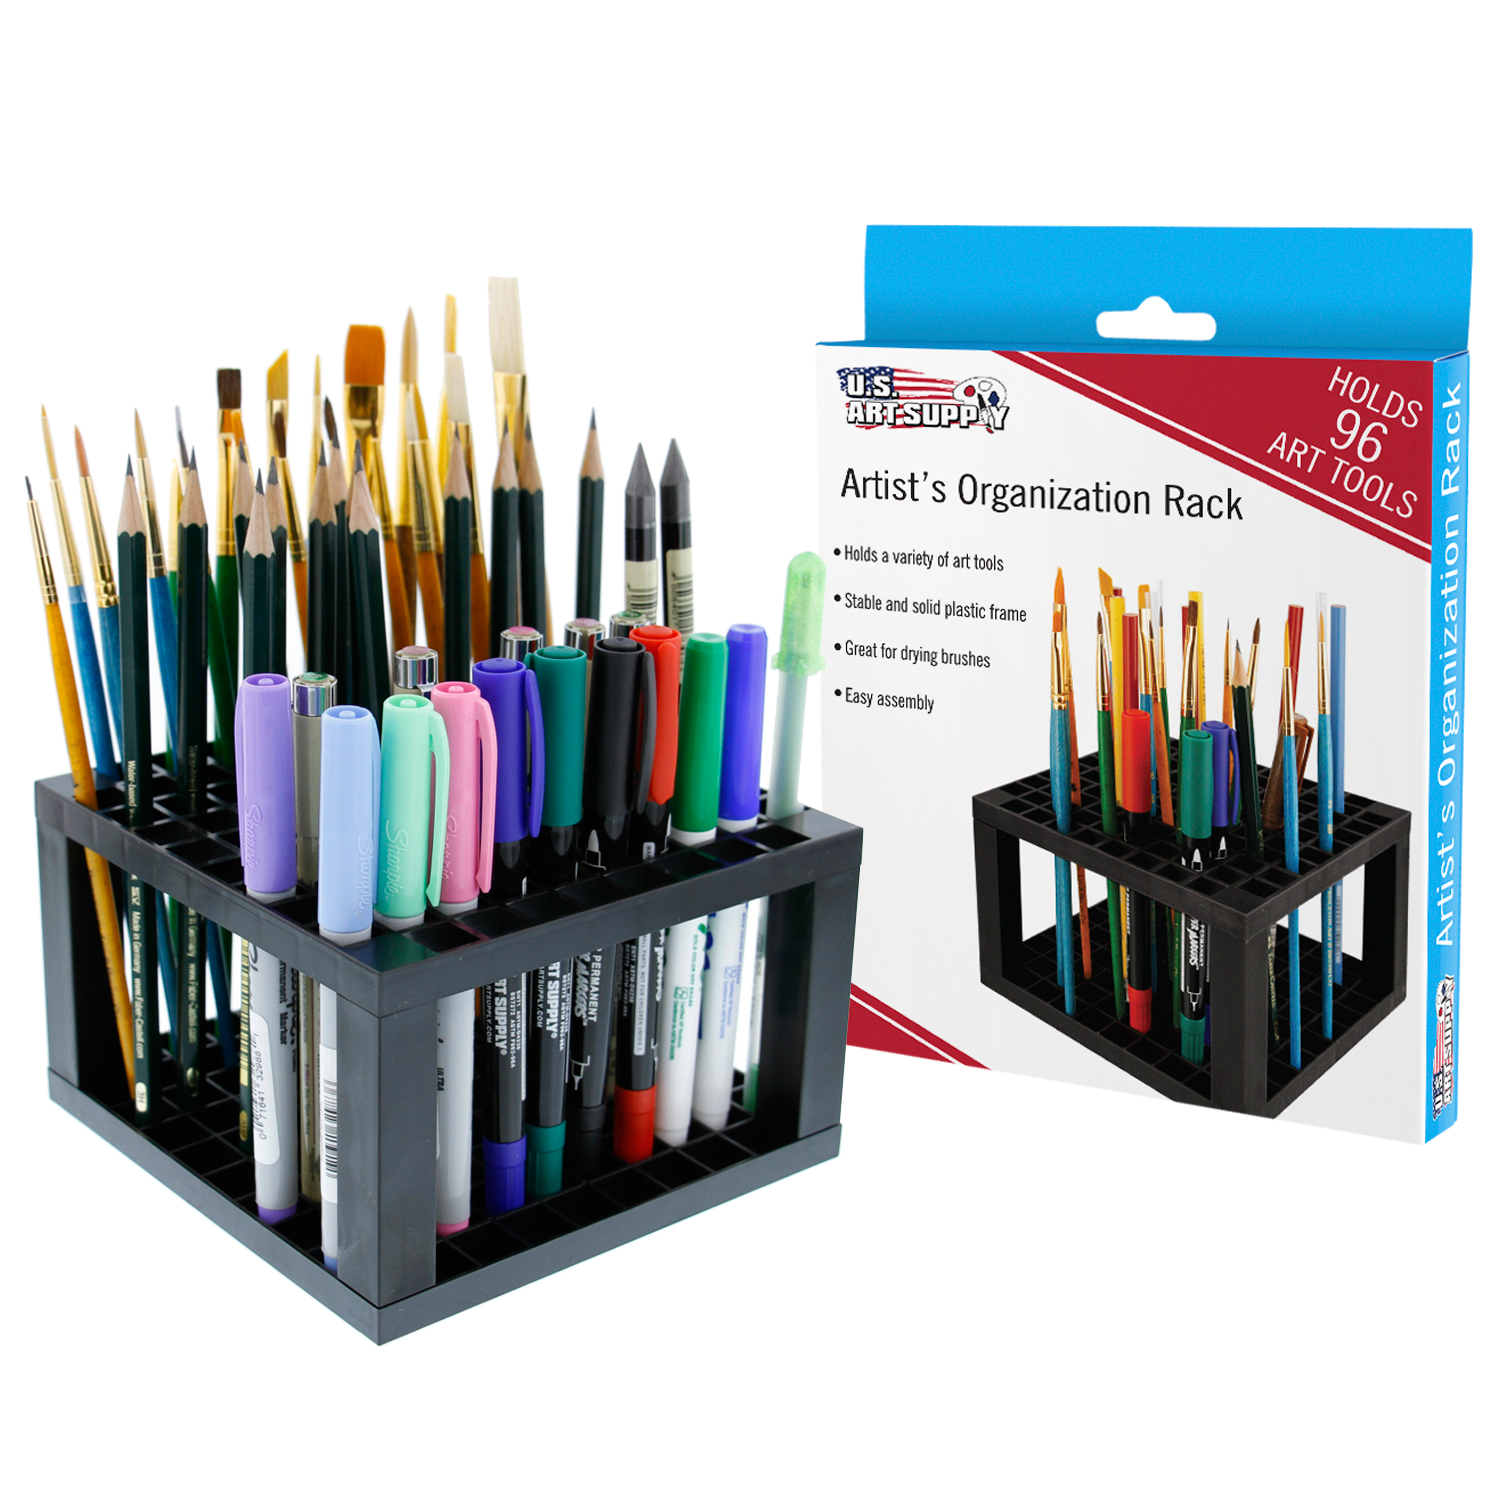 U.S. Art Supply 96 Hole Plastic Pencil & Brush Holder - Desk Stand Organizer Holder for Pens, Paint Brushes, Colored Pen